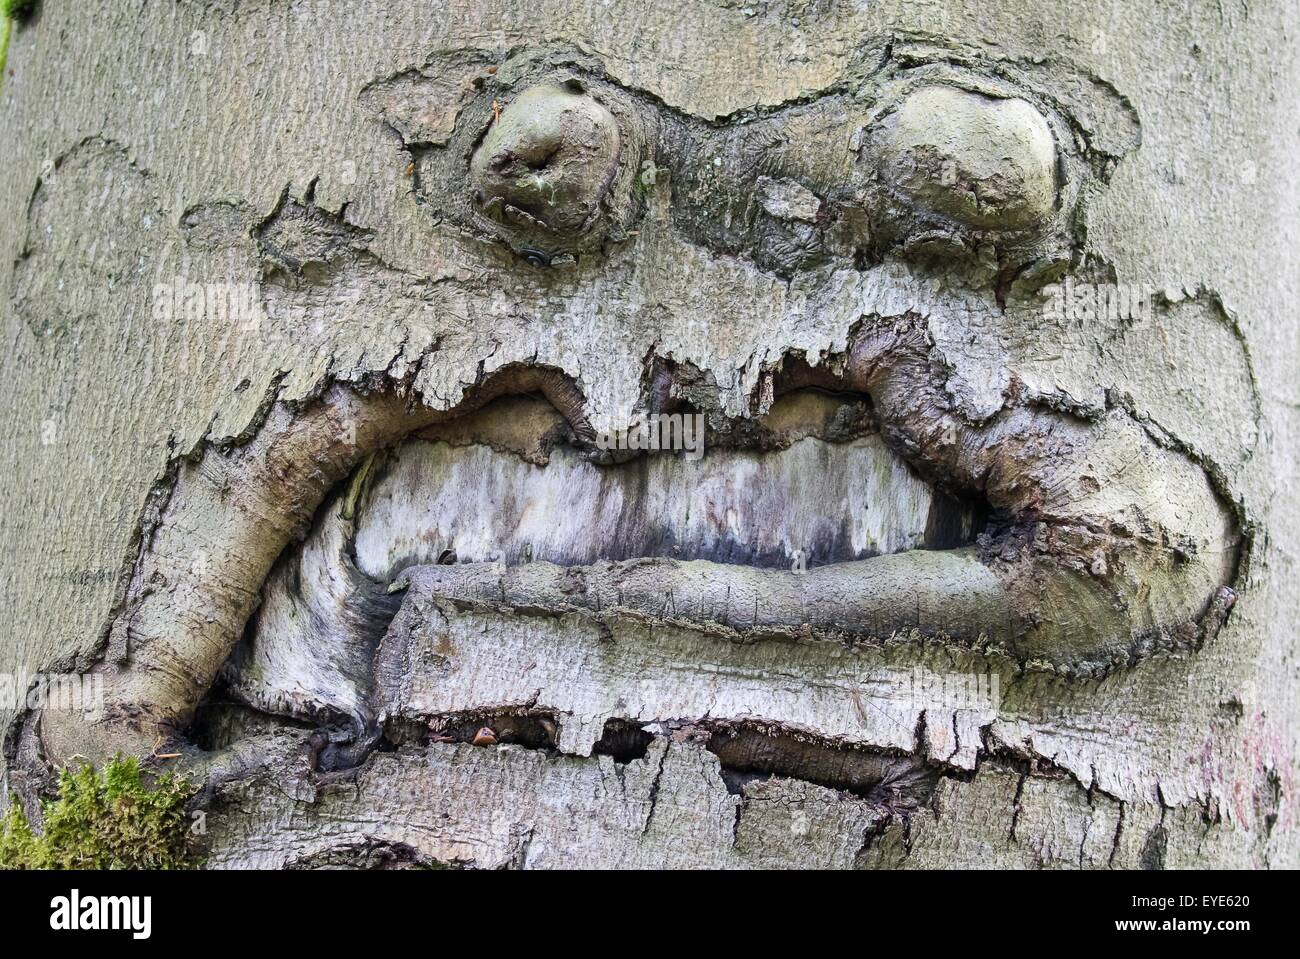 Grimace-like connation on a beech trunk (Fagus sp.), Hesse, Germany - Stock Image